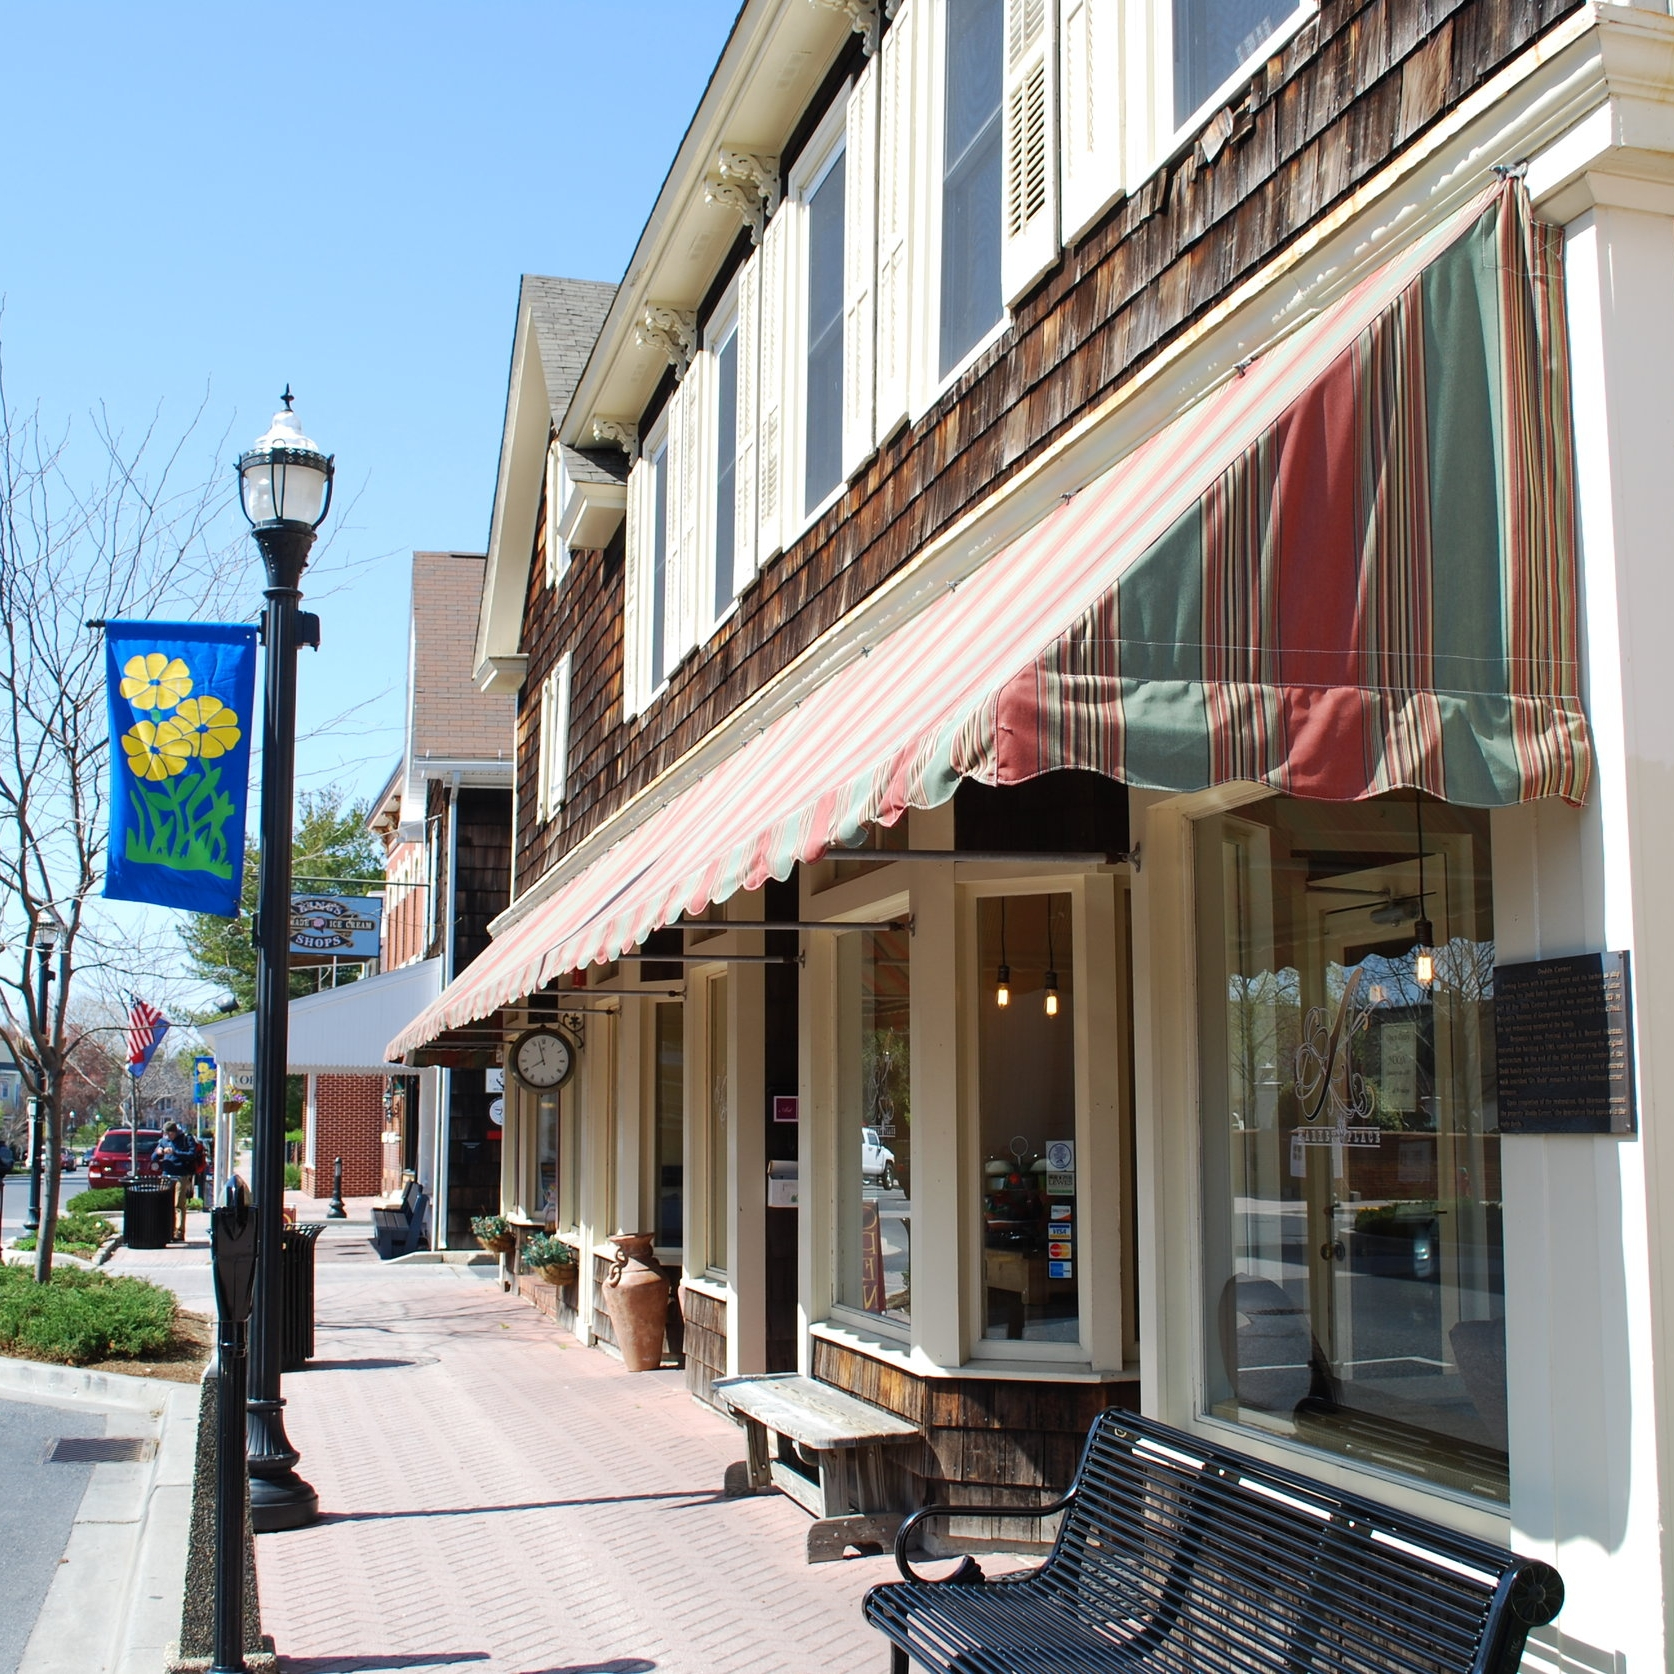 Economic Development - Finding solutions to incentivize local business and tourism in Delaware's rural communities